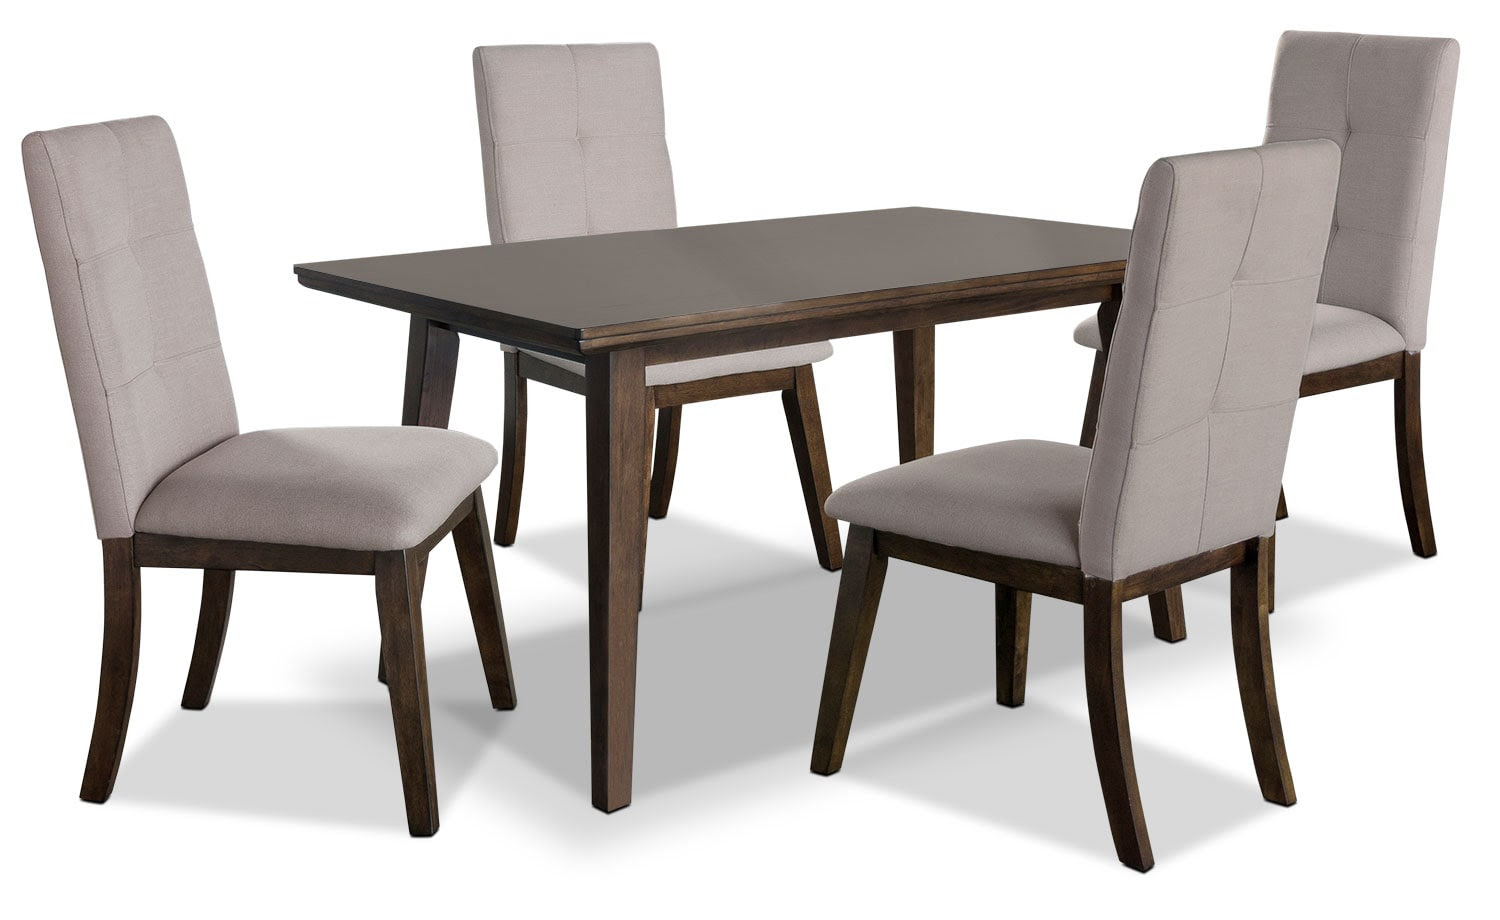 Chelsea 5-Piece Dining Table Package with Beige Chairs ...